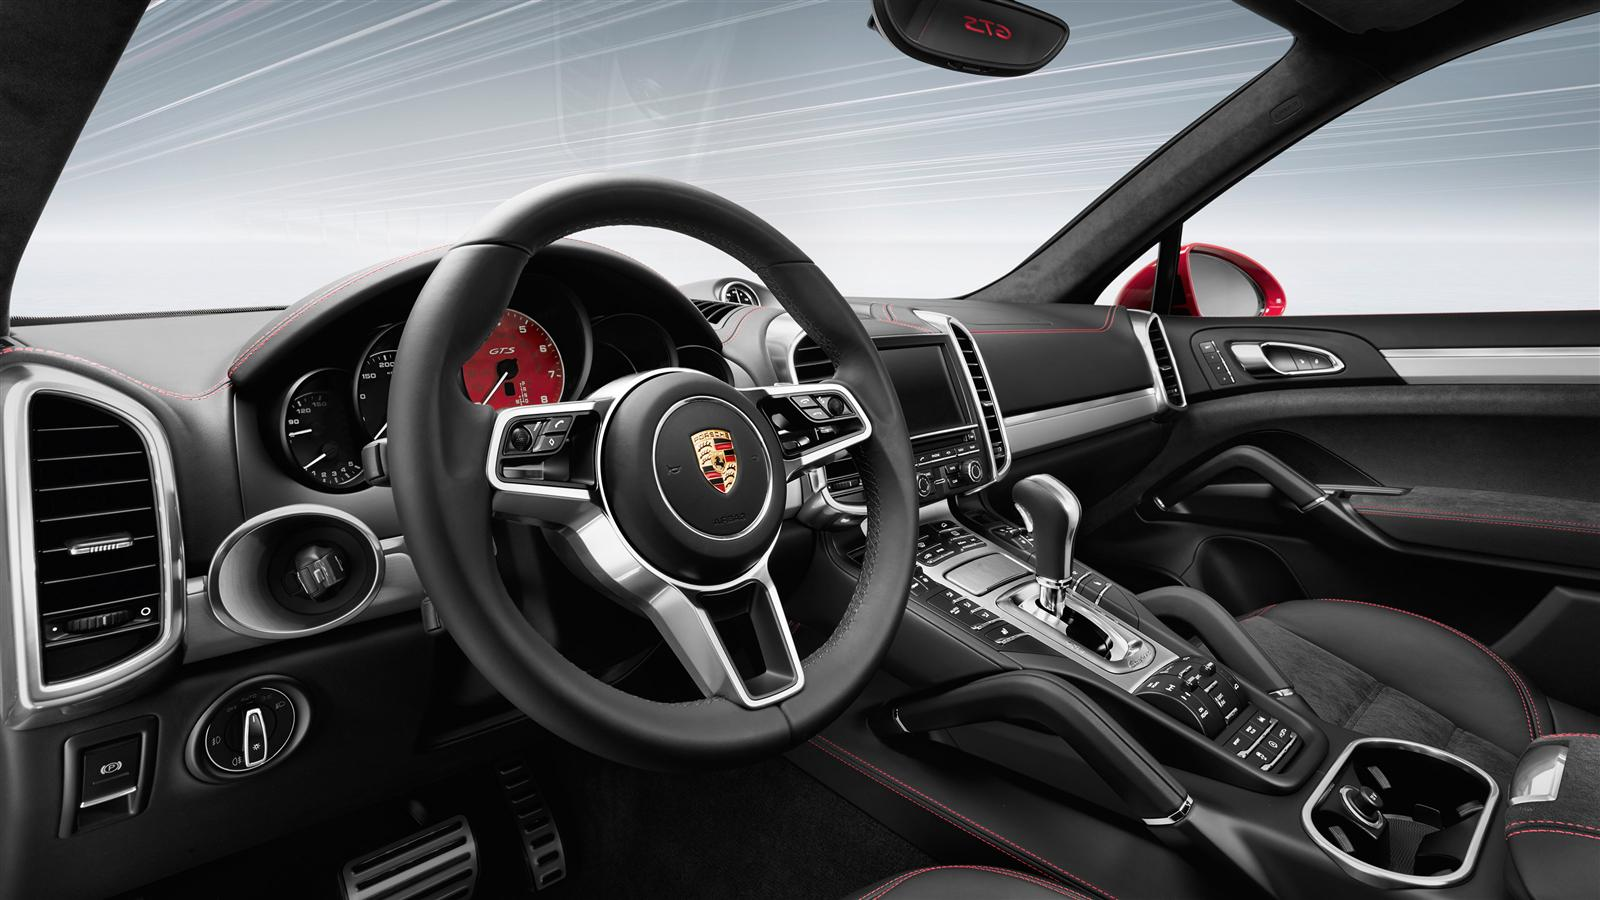 2018 Porsche Cayenne Gts In Riverside Quotes On 2018 Porsche Cayenne Gts In Riverside